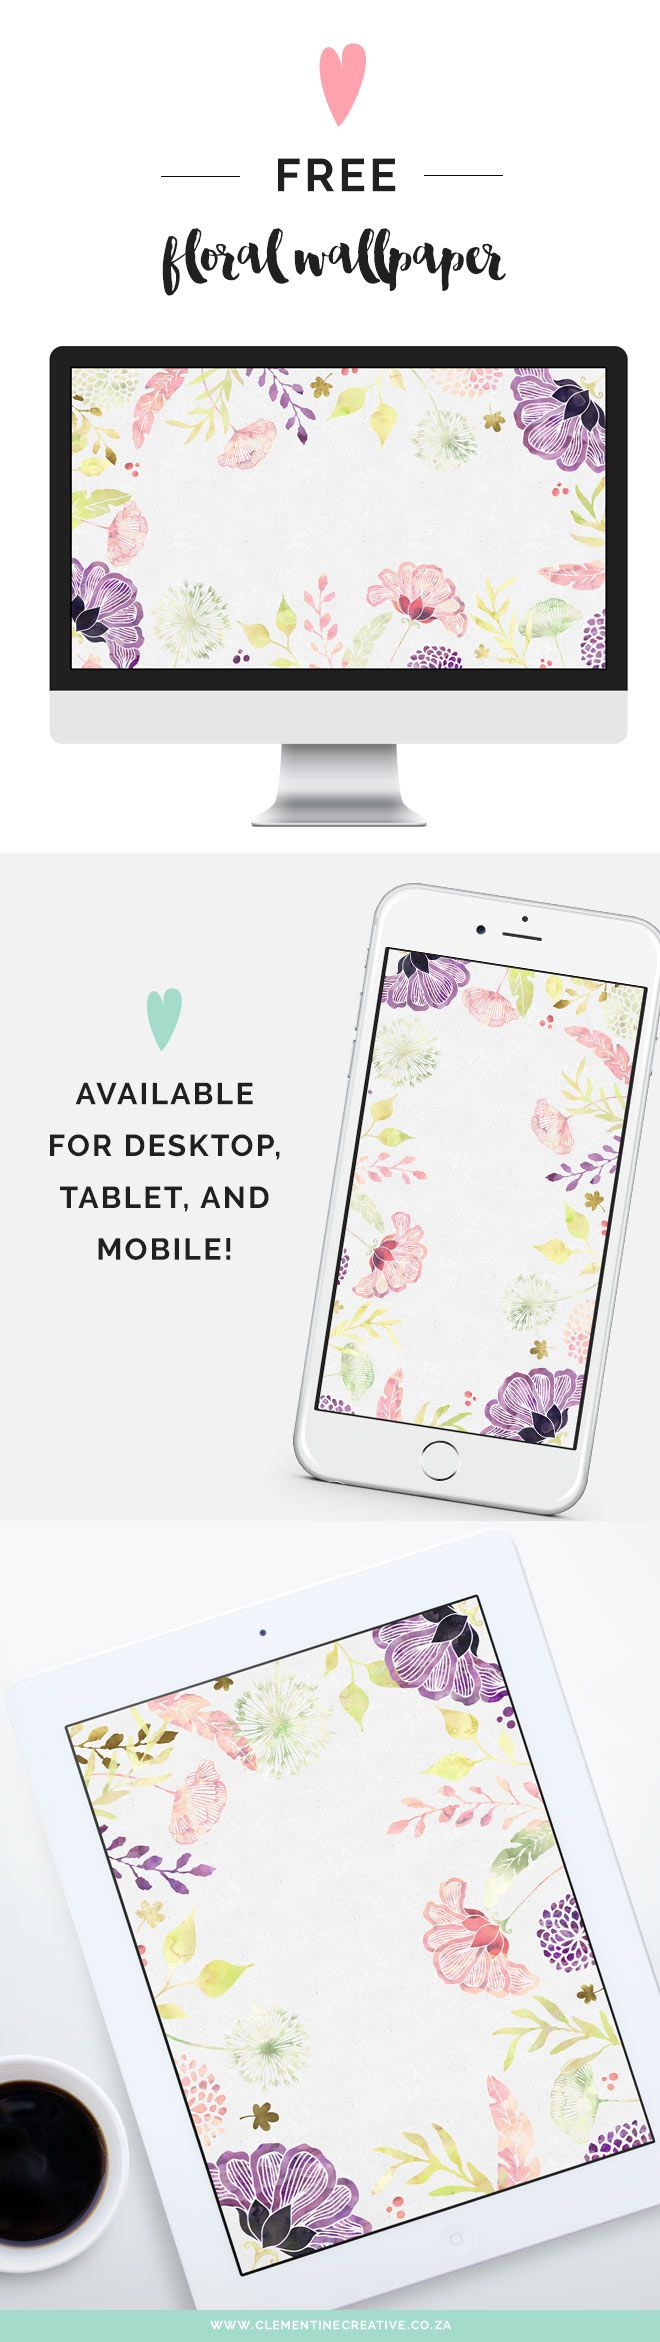 Free Floral Desktop Wallpaper - I Choose Happiness | Download this beautiful wallpaper from Clementine Creative